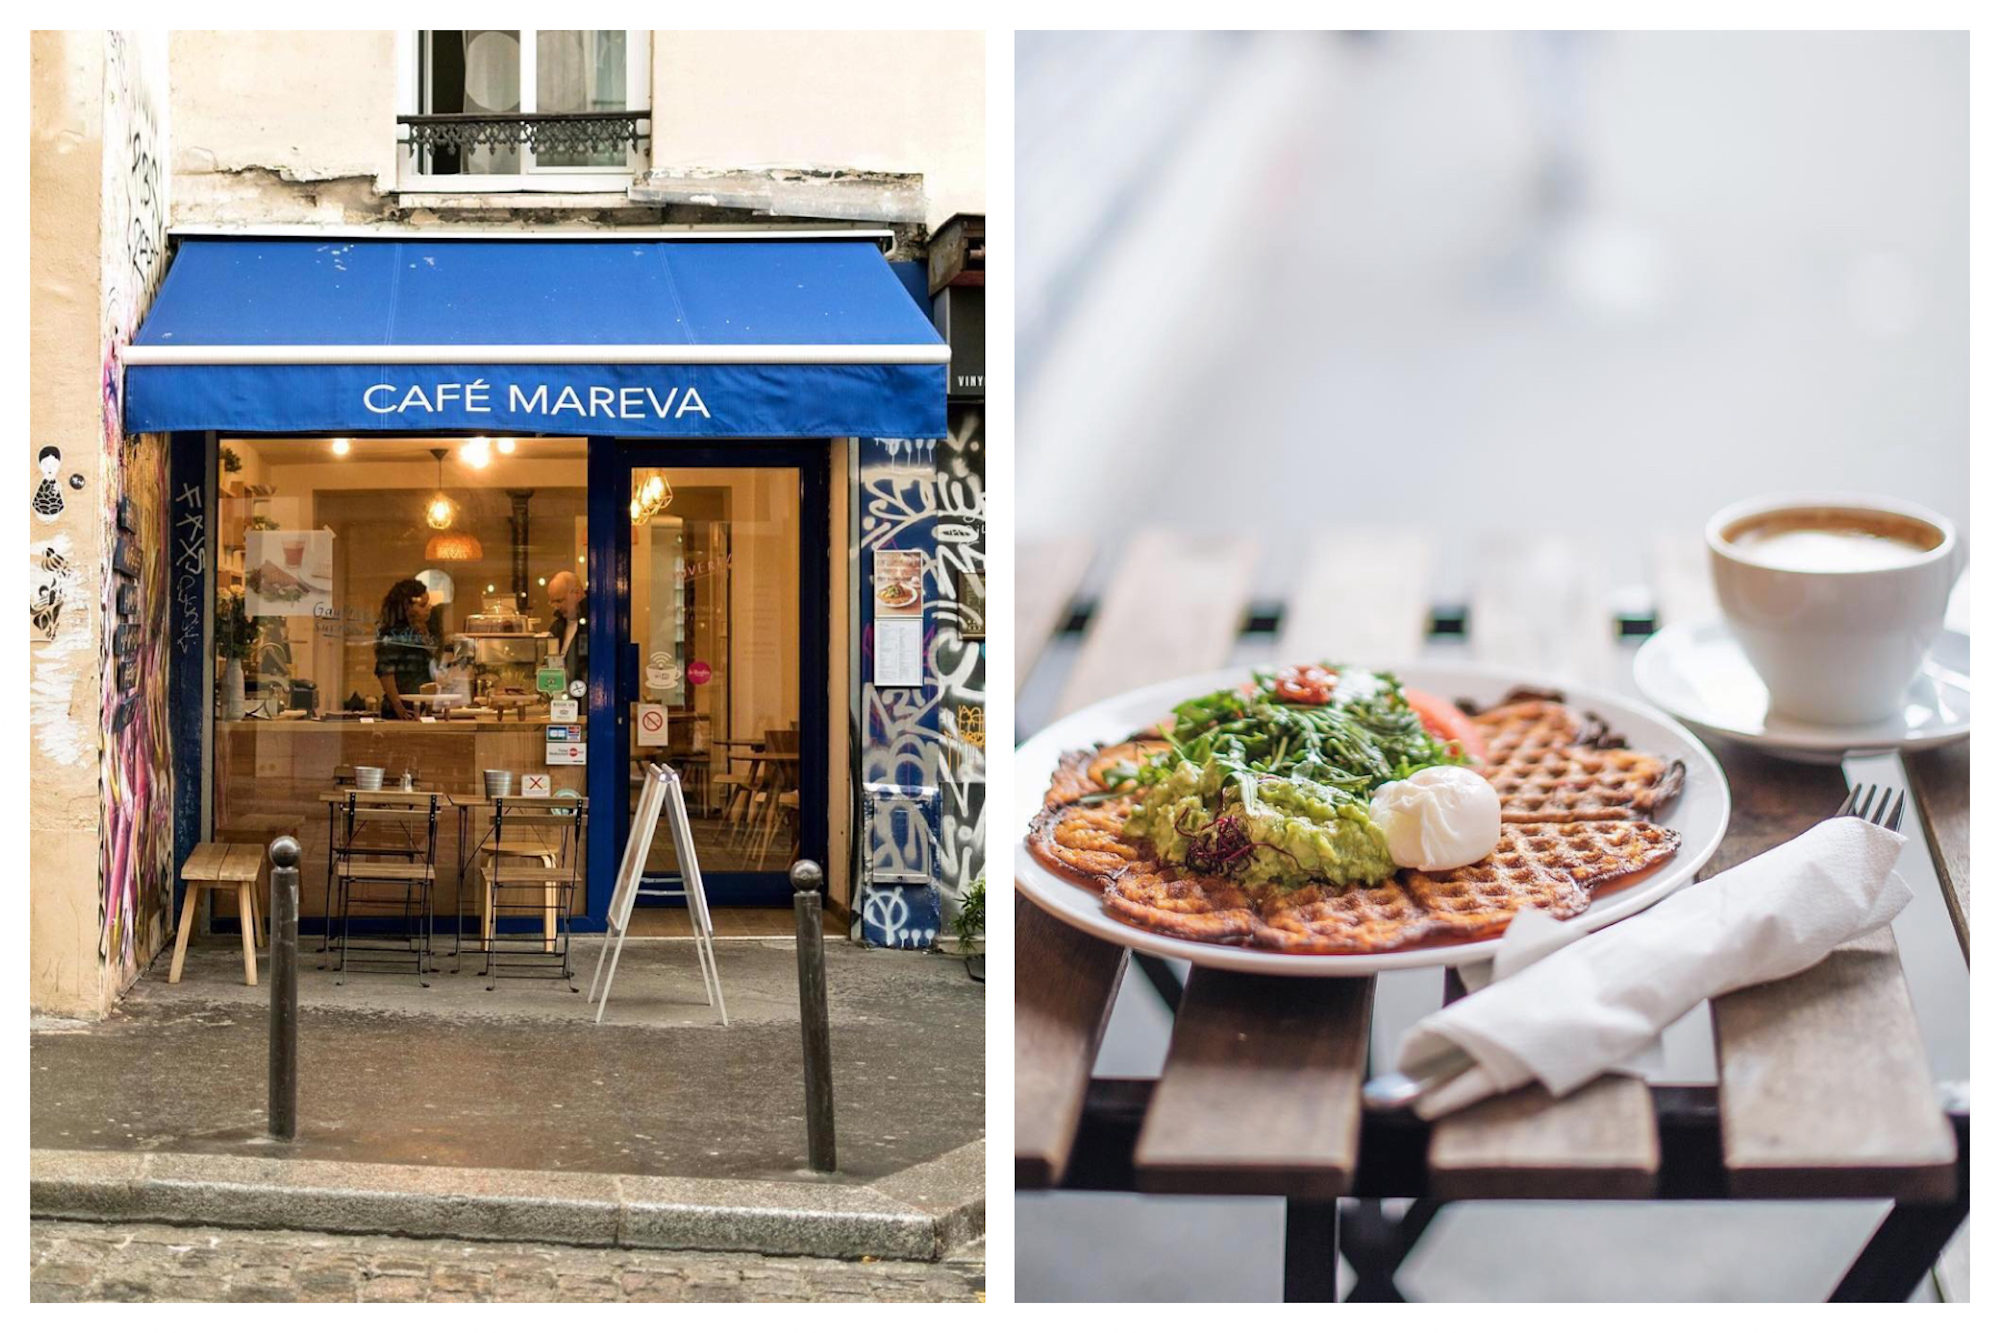 Outside best gluten-free coffee shop in Paris, Mareva with its blue awning (left) and it's tasty gluten-free waffles with avocado and poached eggs (right).